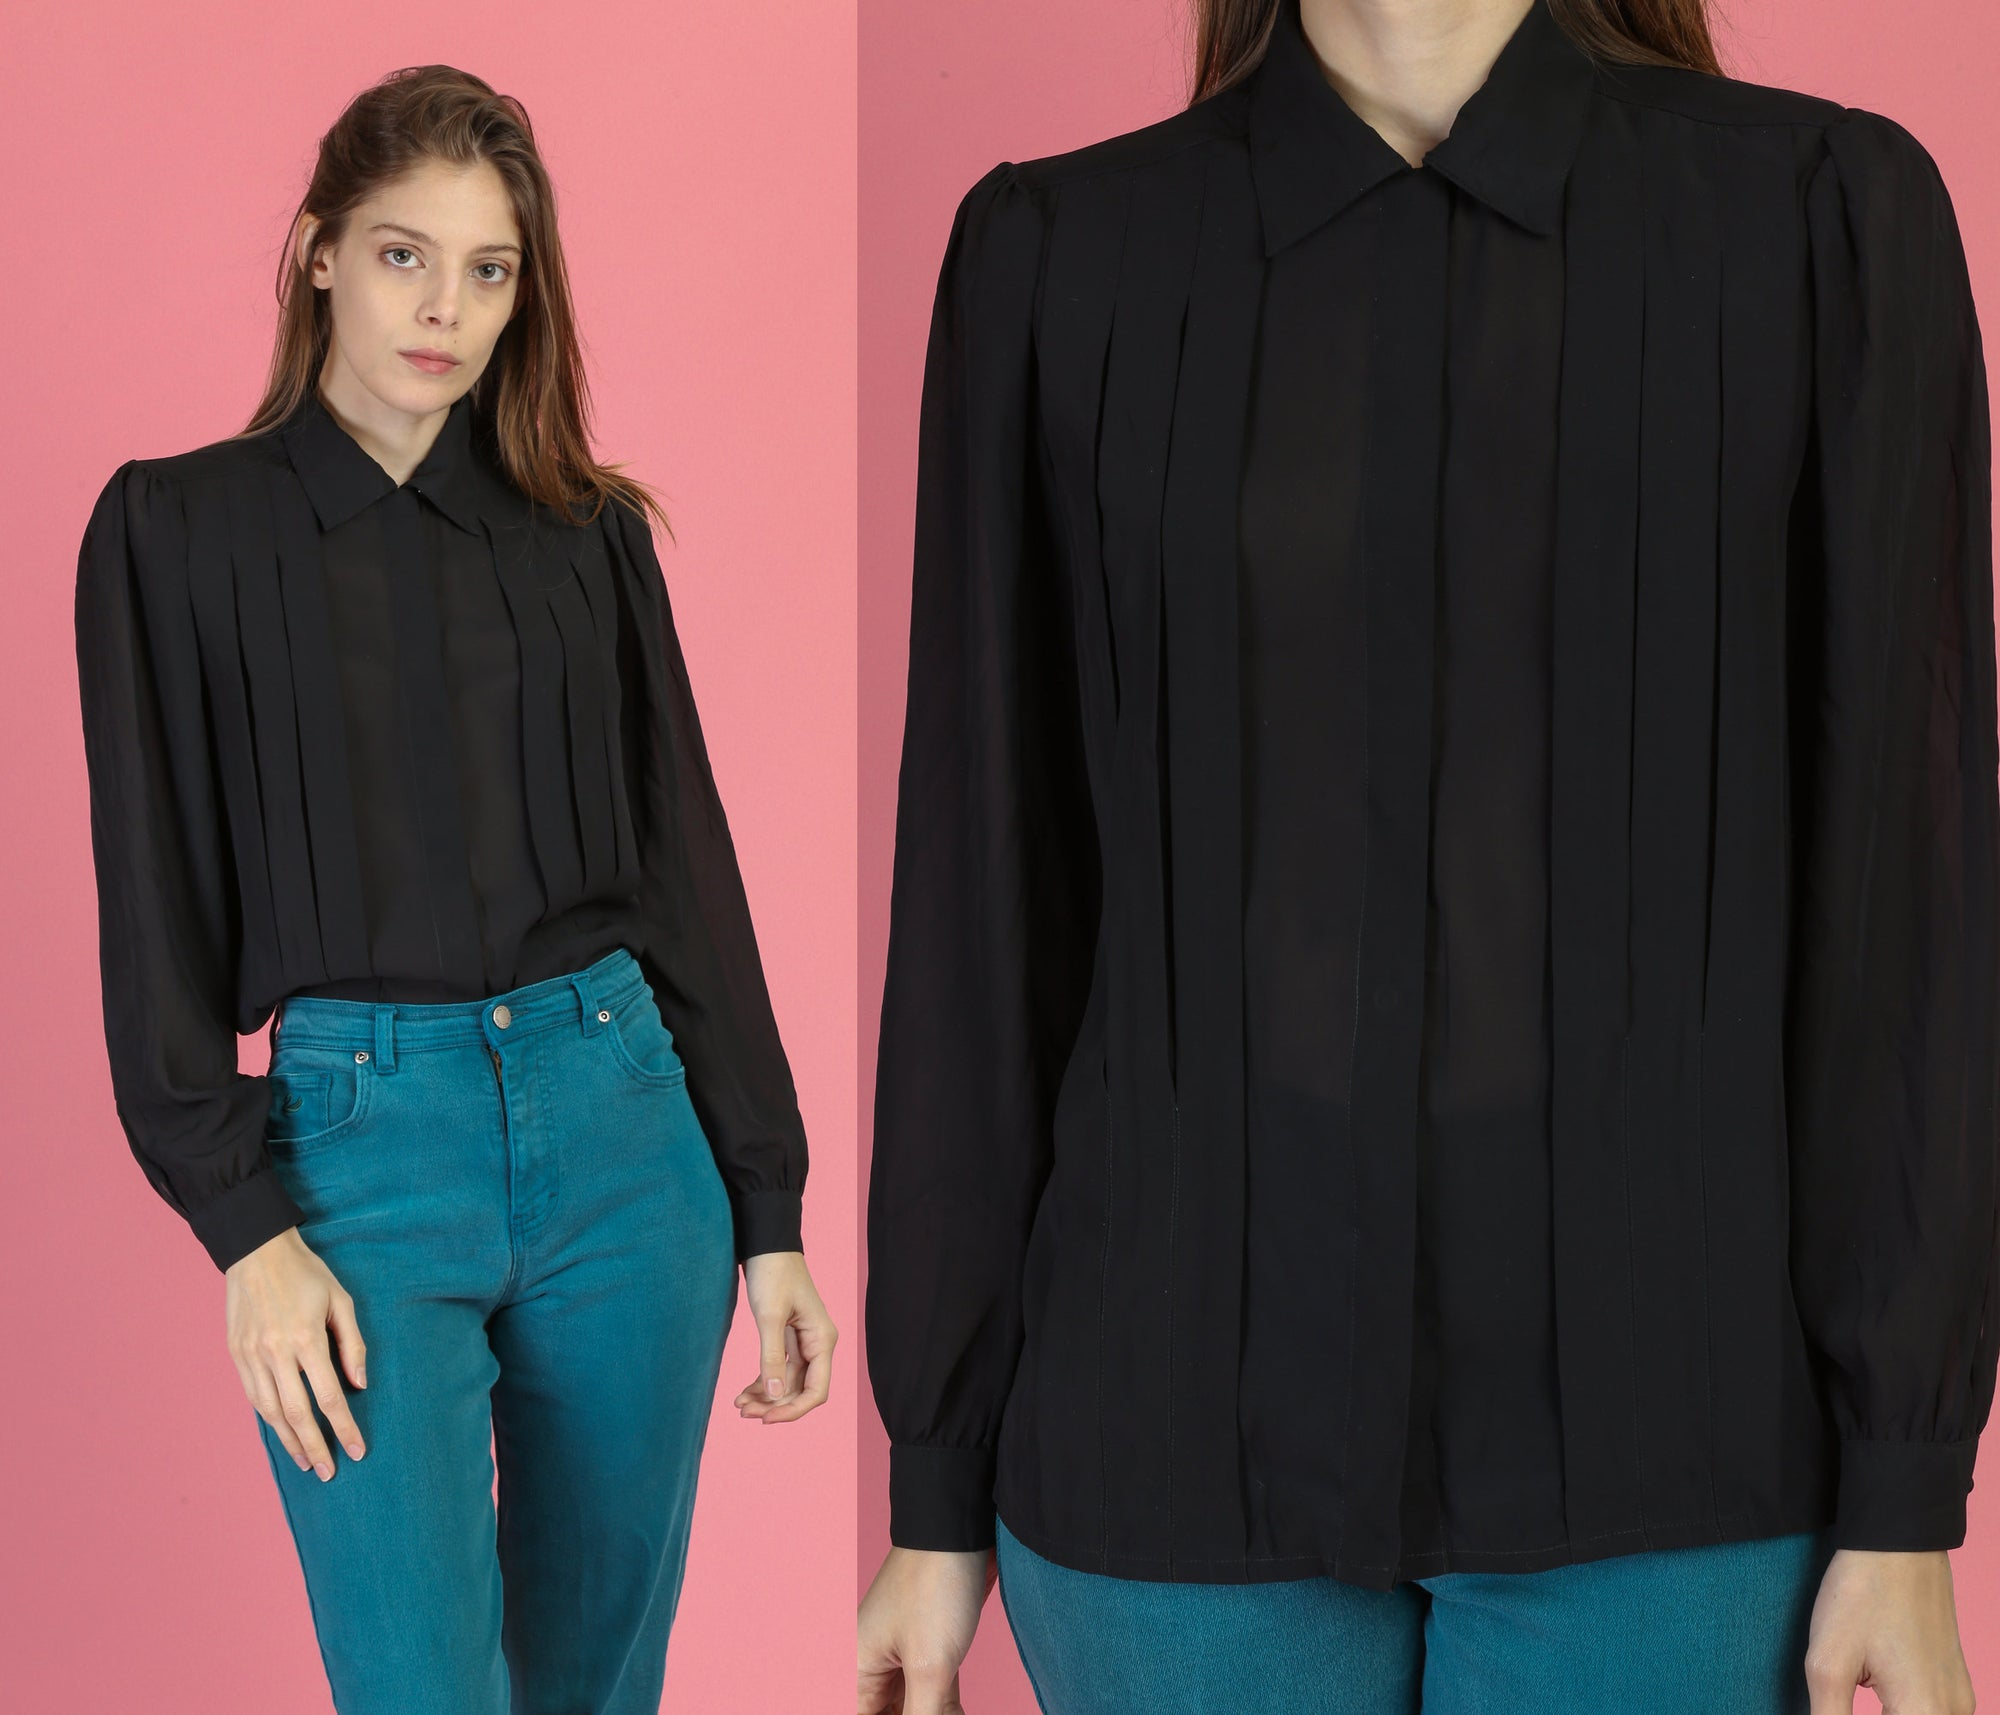 80s Sheer Black Pleated Blouse - Medium